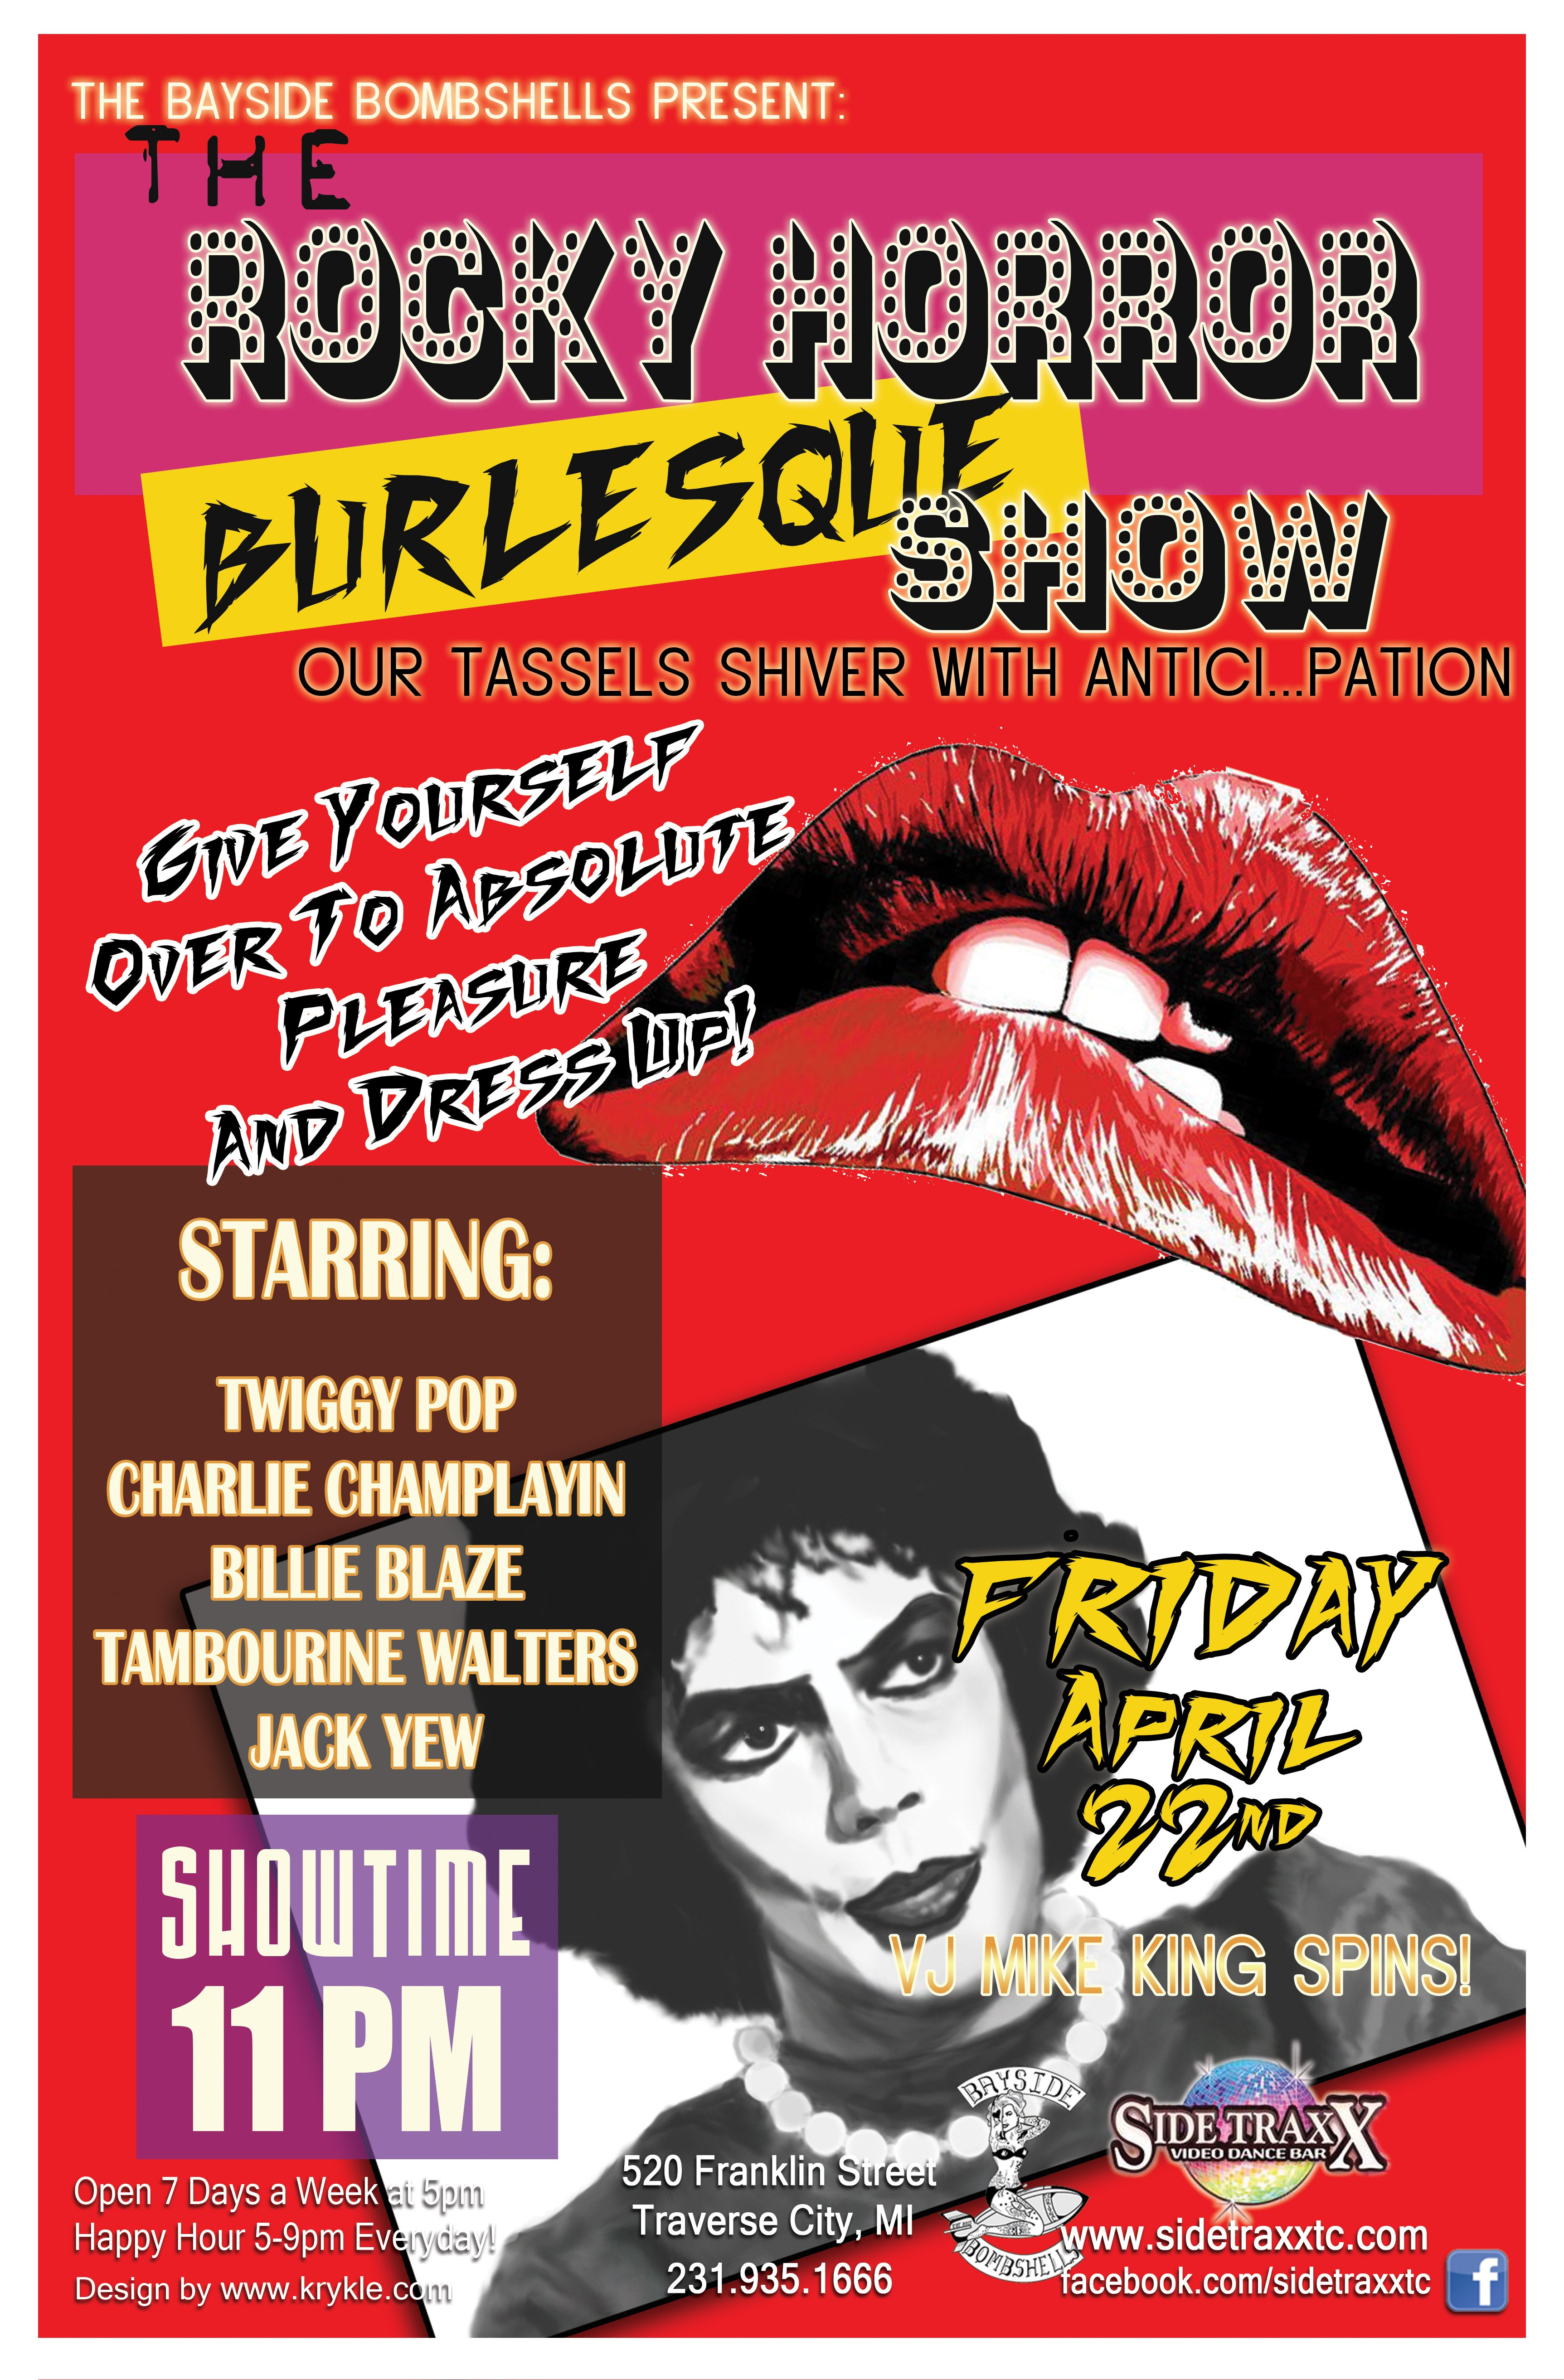 Friday - April 22nd 2016 - Rocky Horror Burlesque - Presented by the Bayside Bombshells